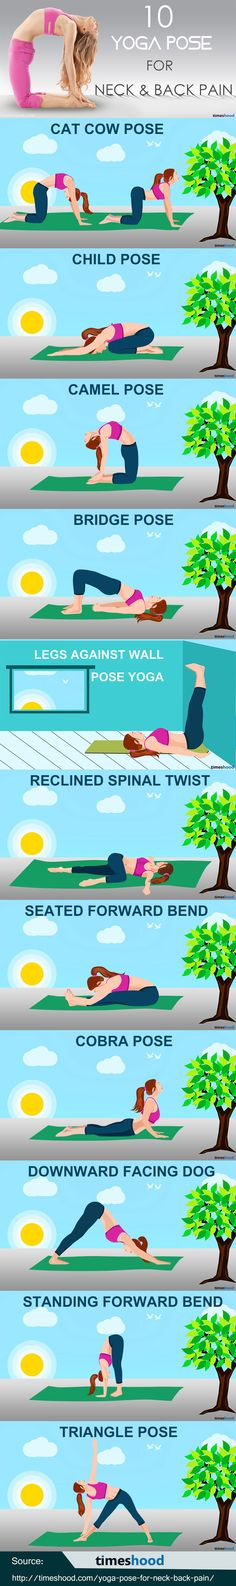 11 easy Yoga pose for neck and back pain to feel more active. Simple Yoga Pose for Back Pain. Yoga Exercise for Neck pain. Morning Yoga pose for beginner.